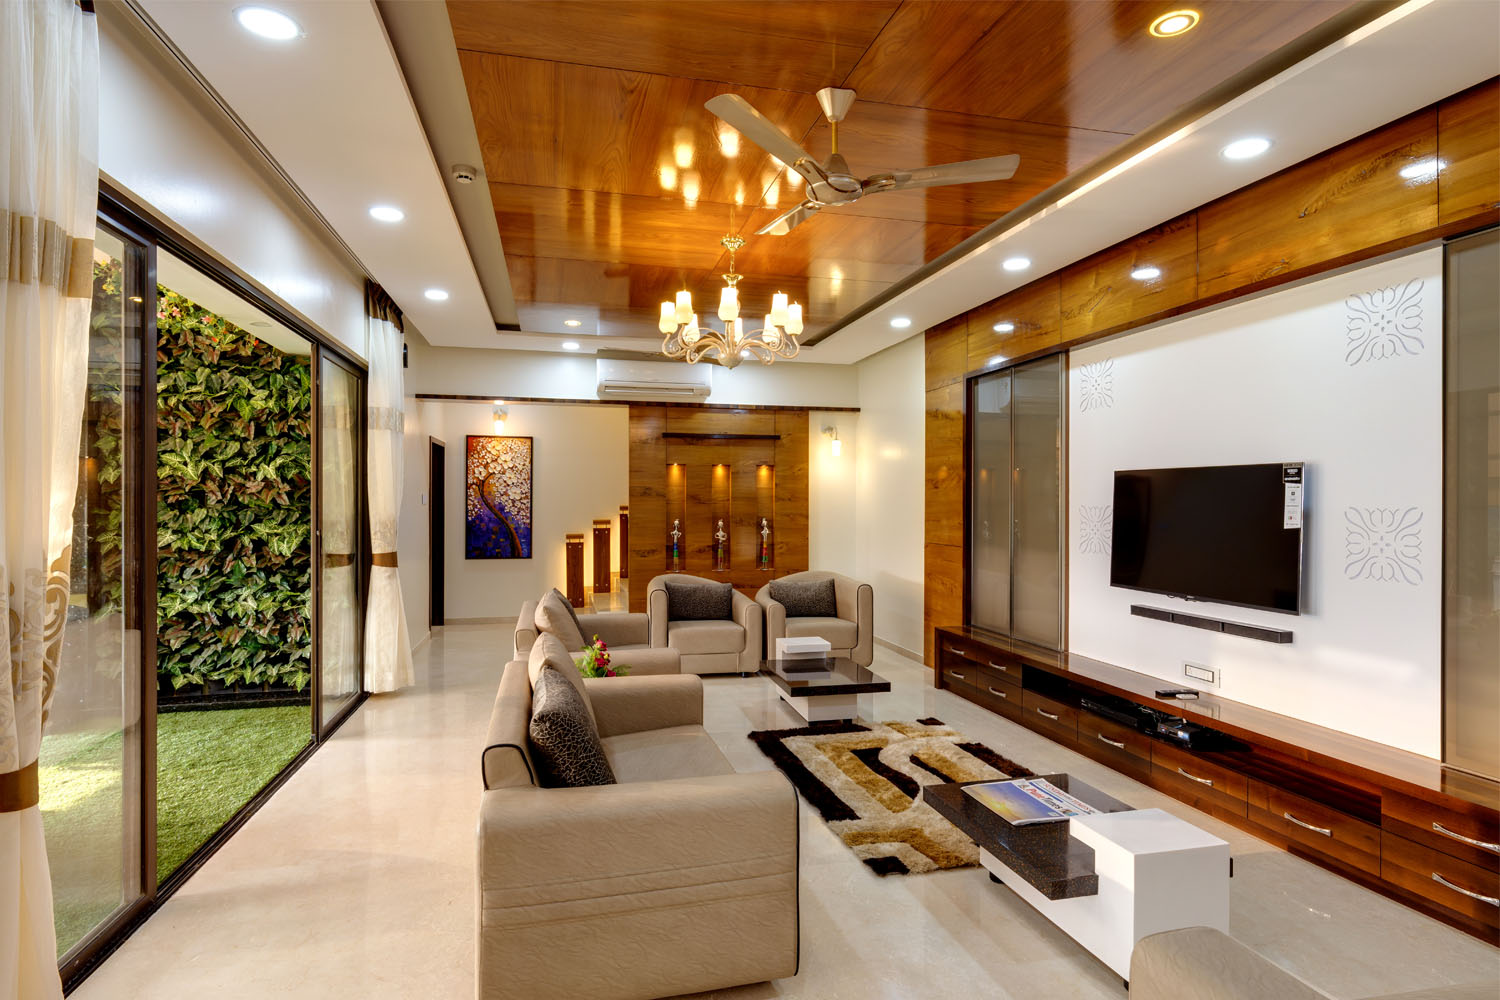 Best interior designer pune nerlekar interior designing for Best interior decorating sites